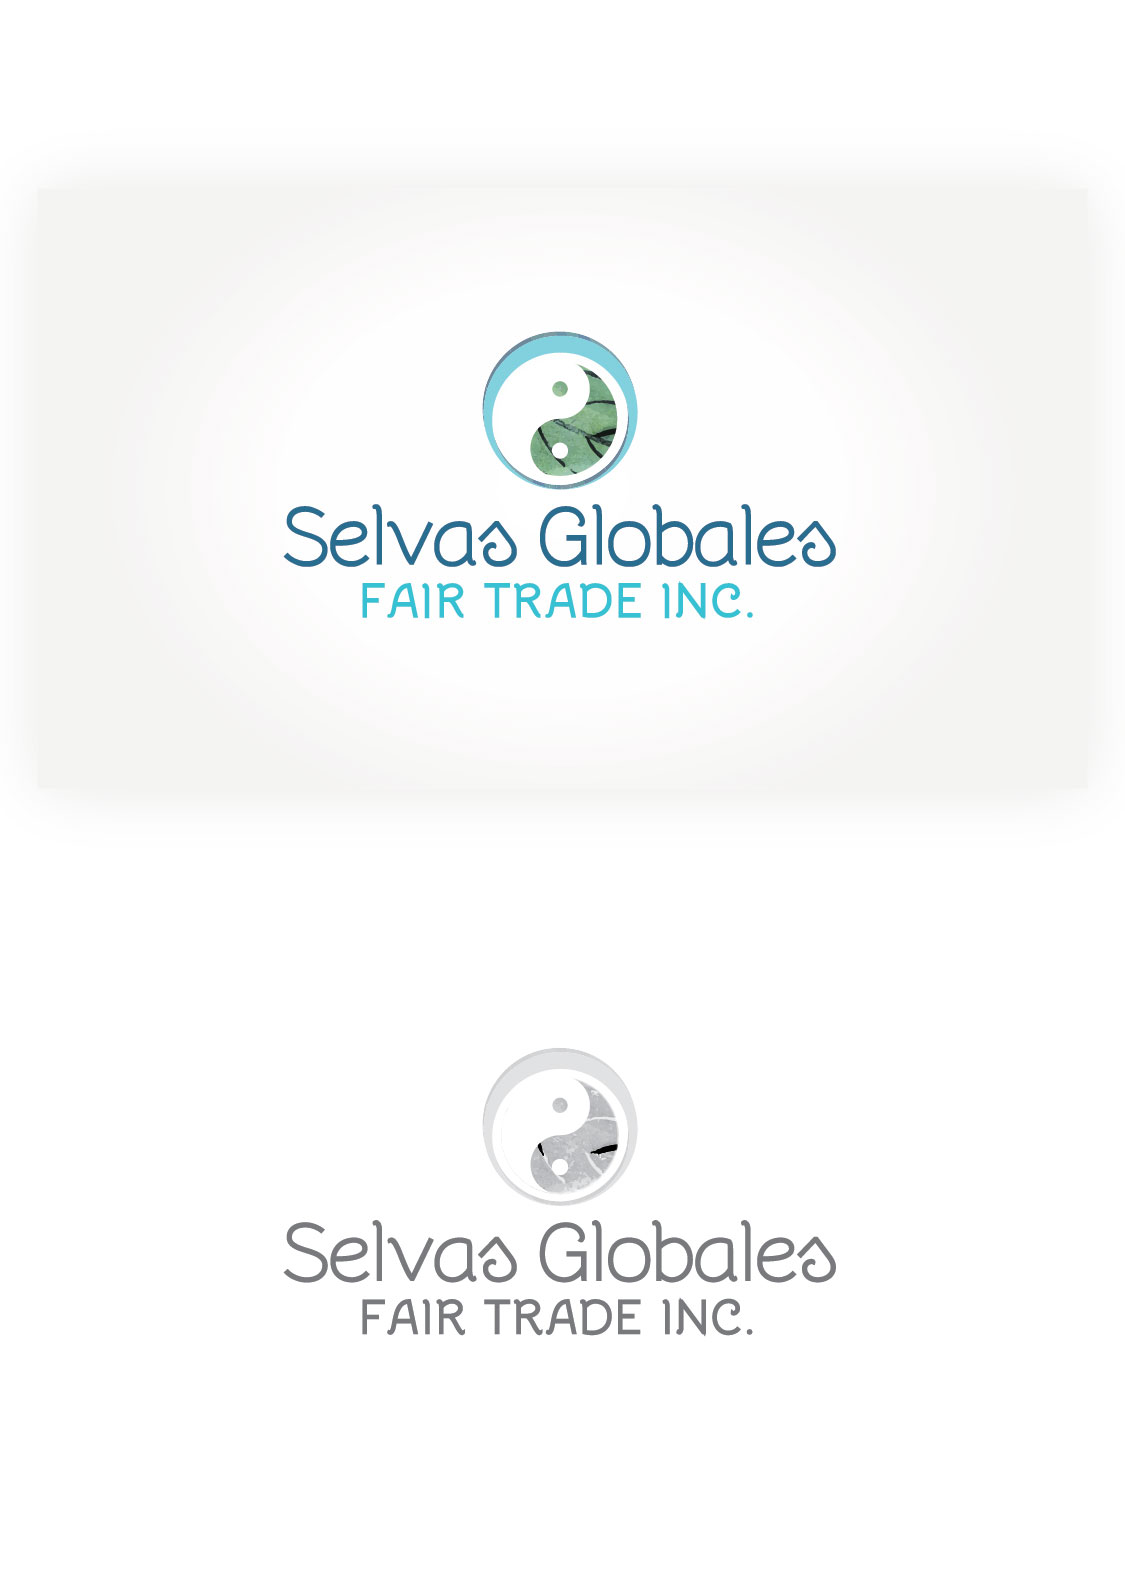 Logo Design by Gnnosch - Entry No. 152 in the Logo Design Contest Captivating Logo Design for Selvas Globales Fair Trade Inc..